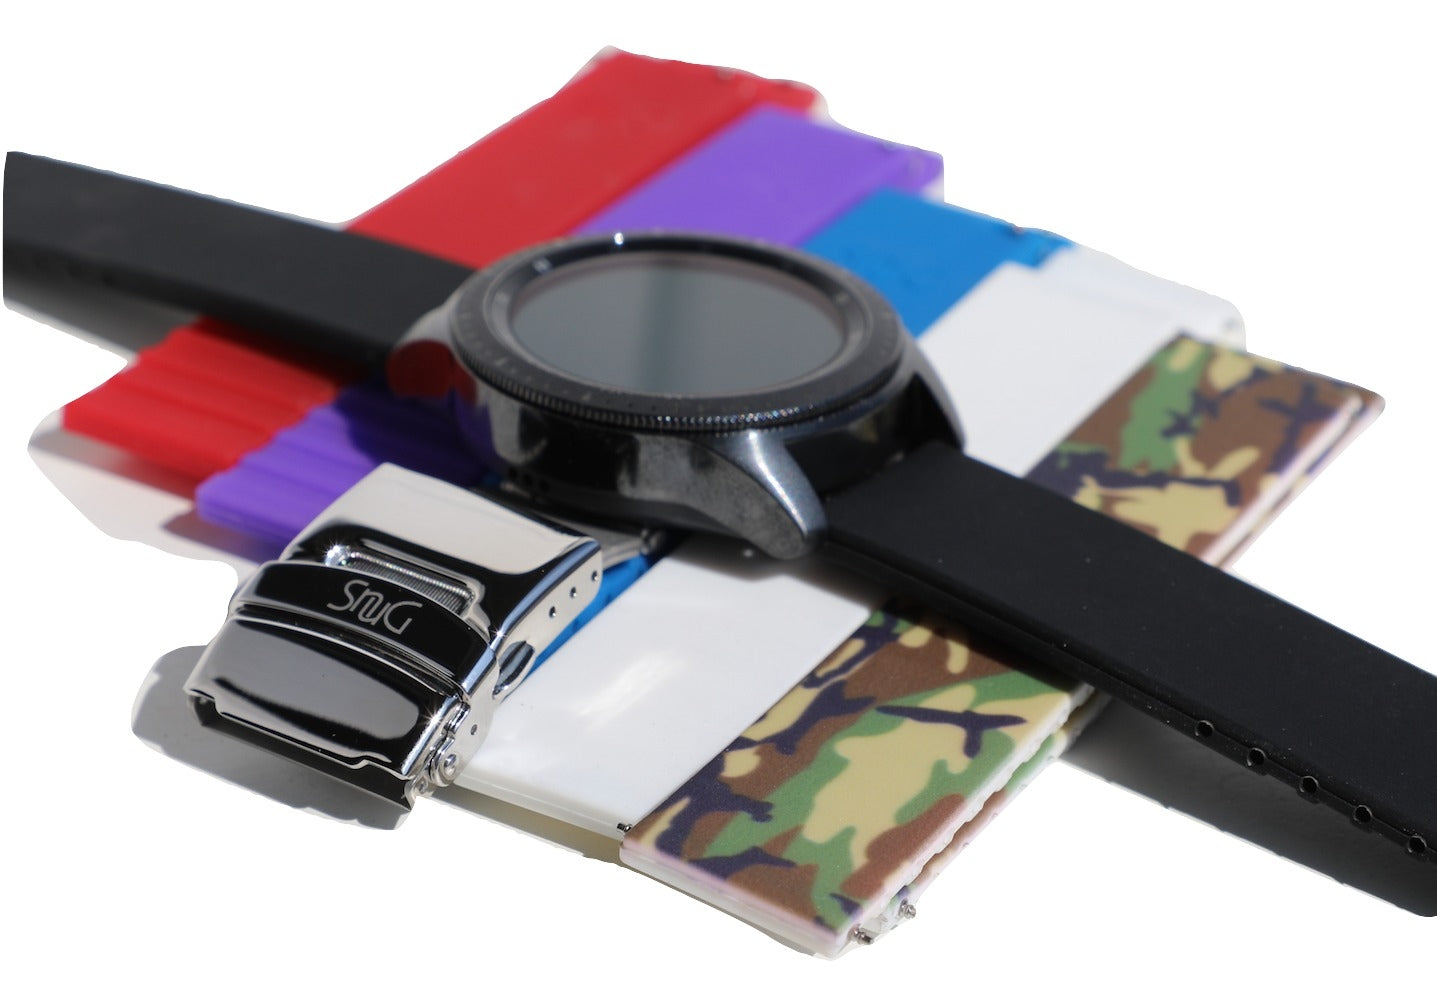 SnuG watchbands ULTIMATE Samsung Galaxy Watch Combo Pack